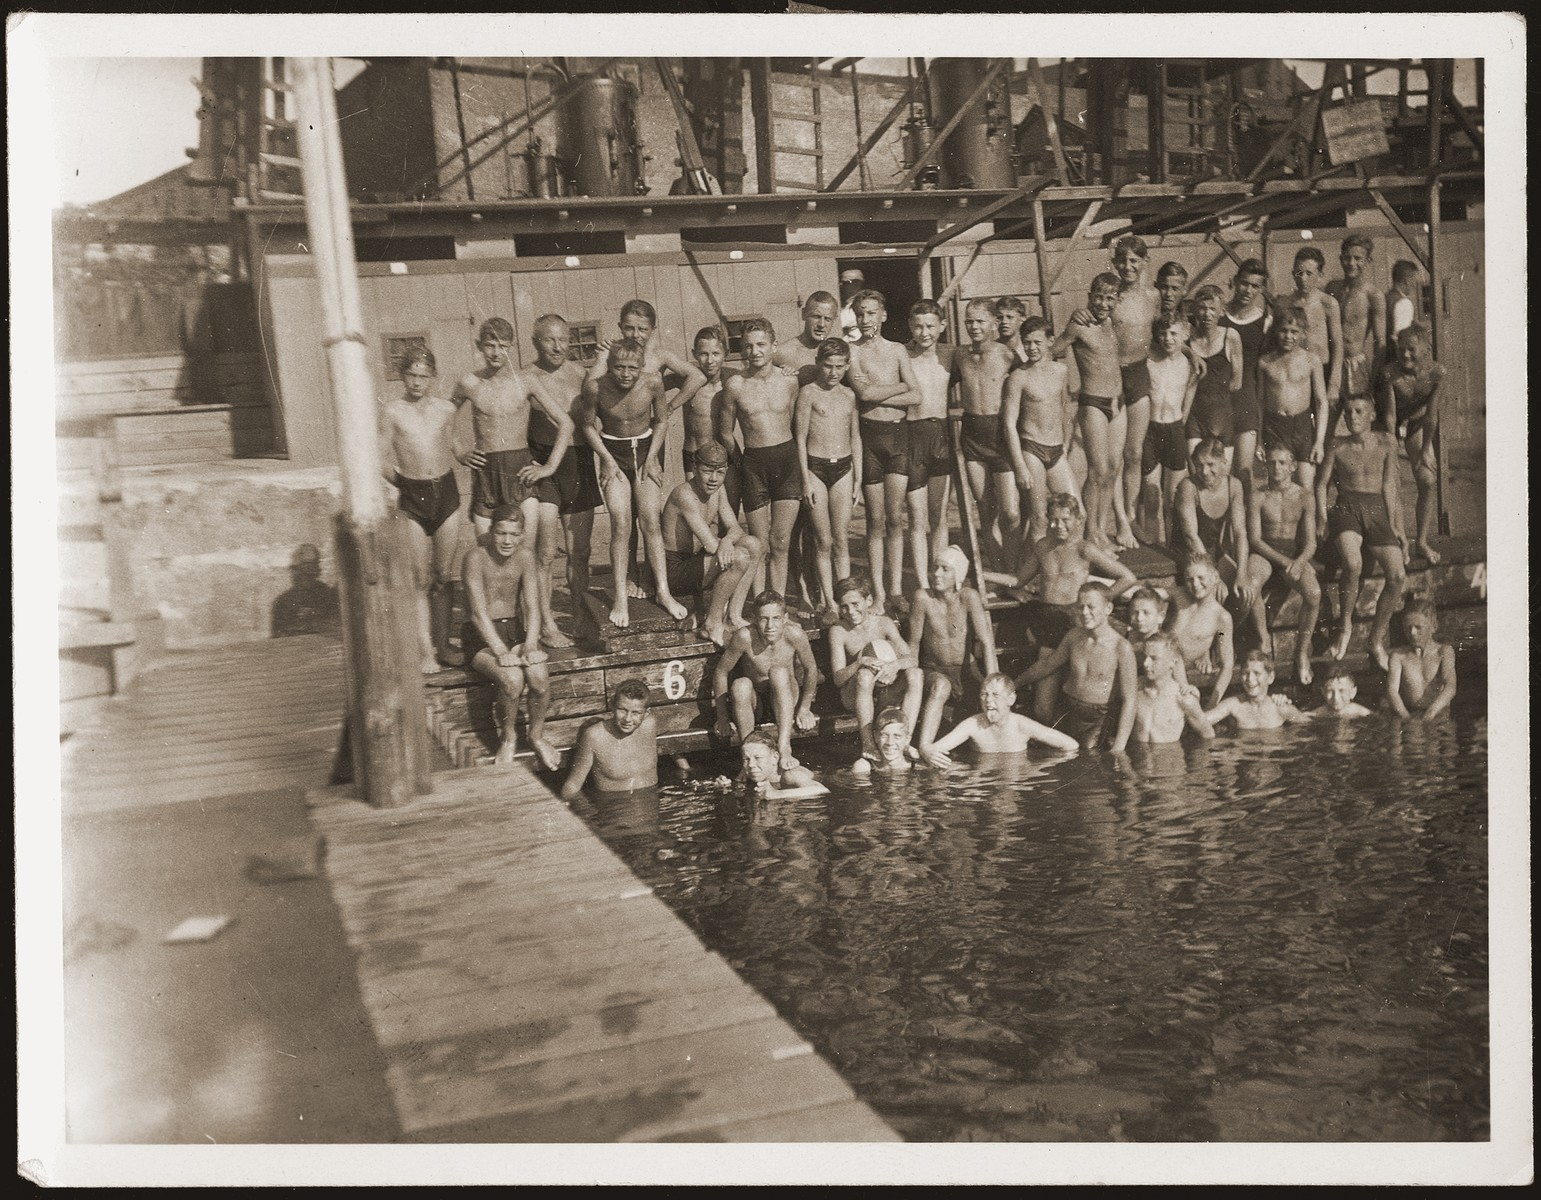 Group portrait of the swim team of the Schiller Real Gymnasium in Stettin.  Walter Jacobsberg is pictured on the far left in the pool.